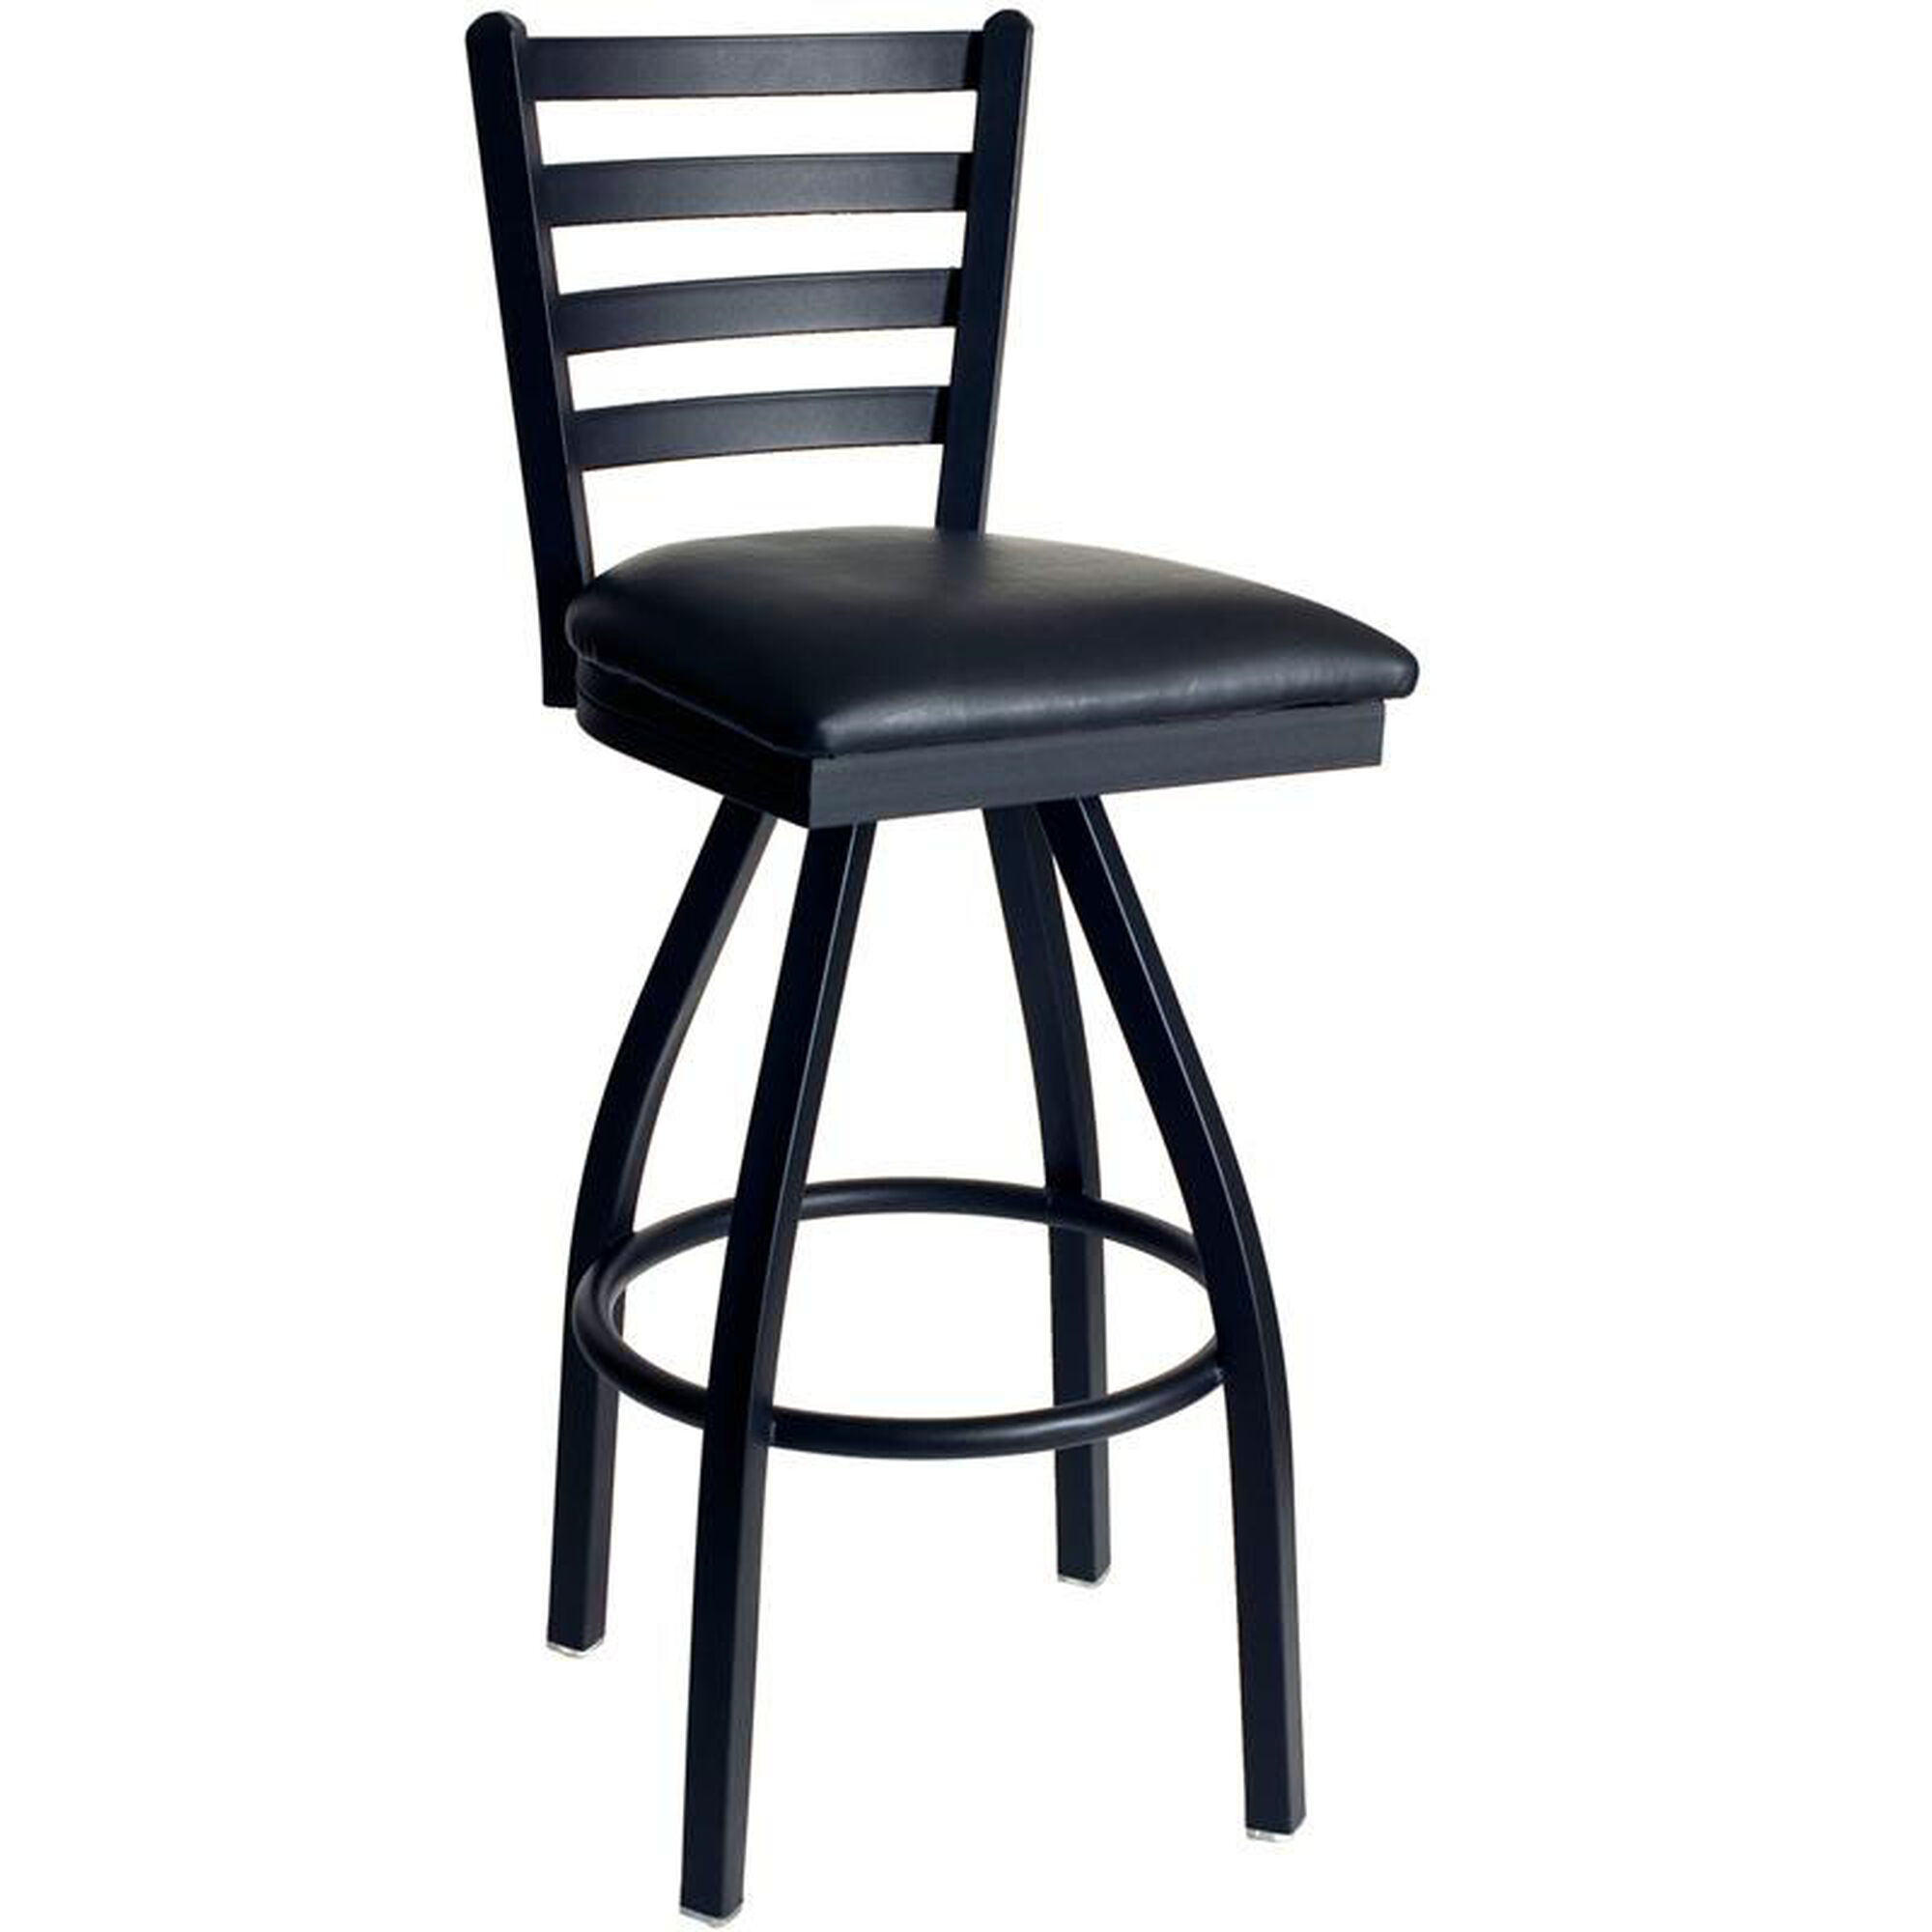 Lima Ladderback Swivel Barstool Restaurantfurniture4less Com